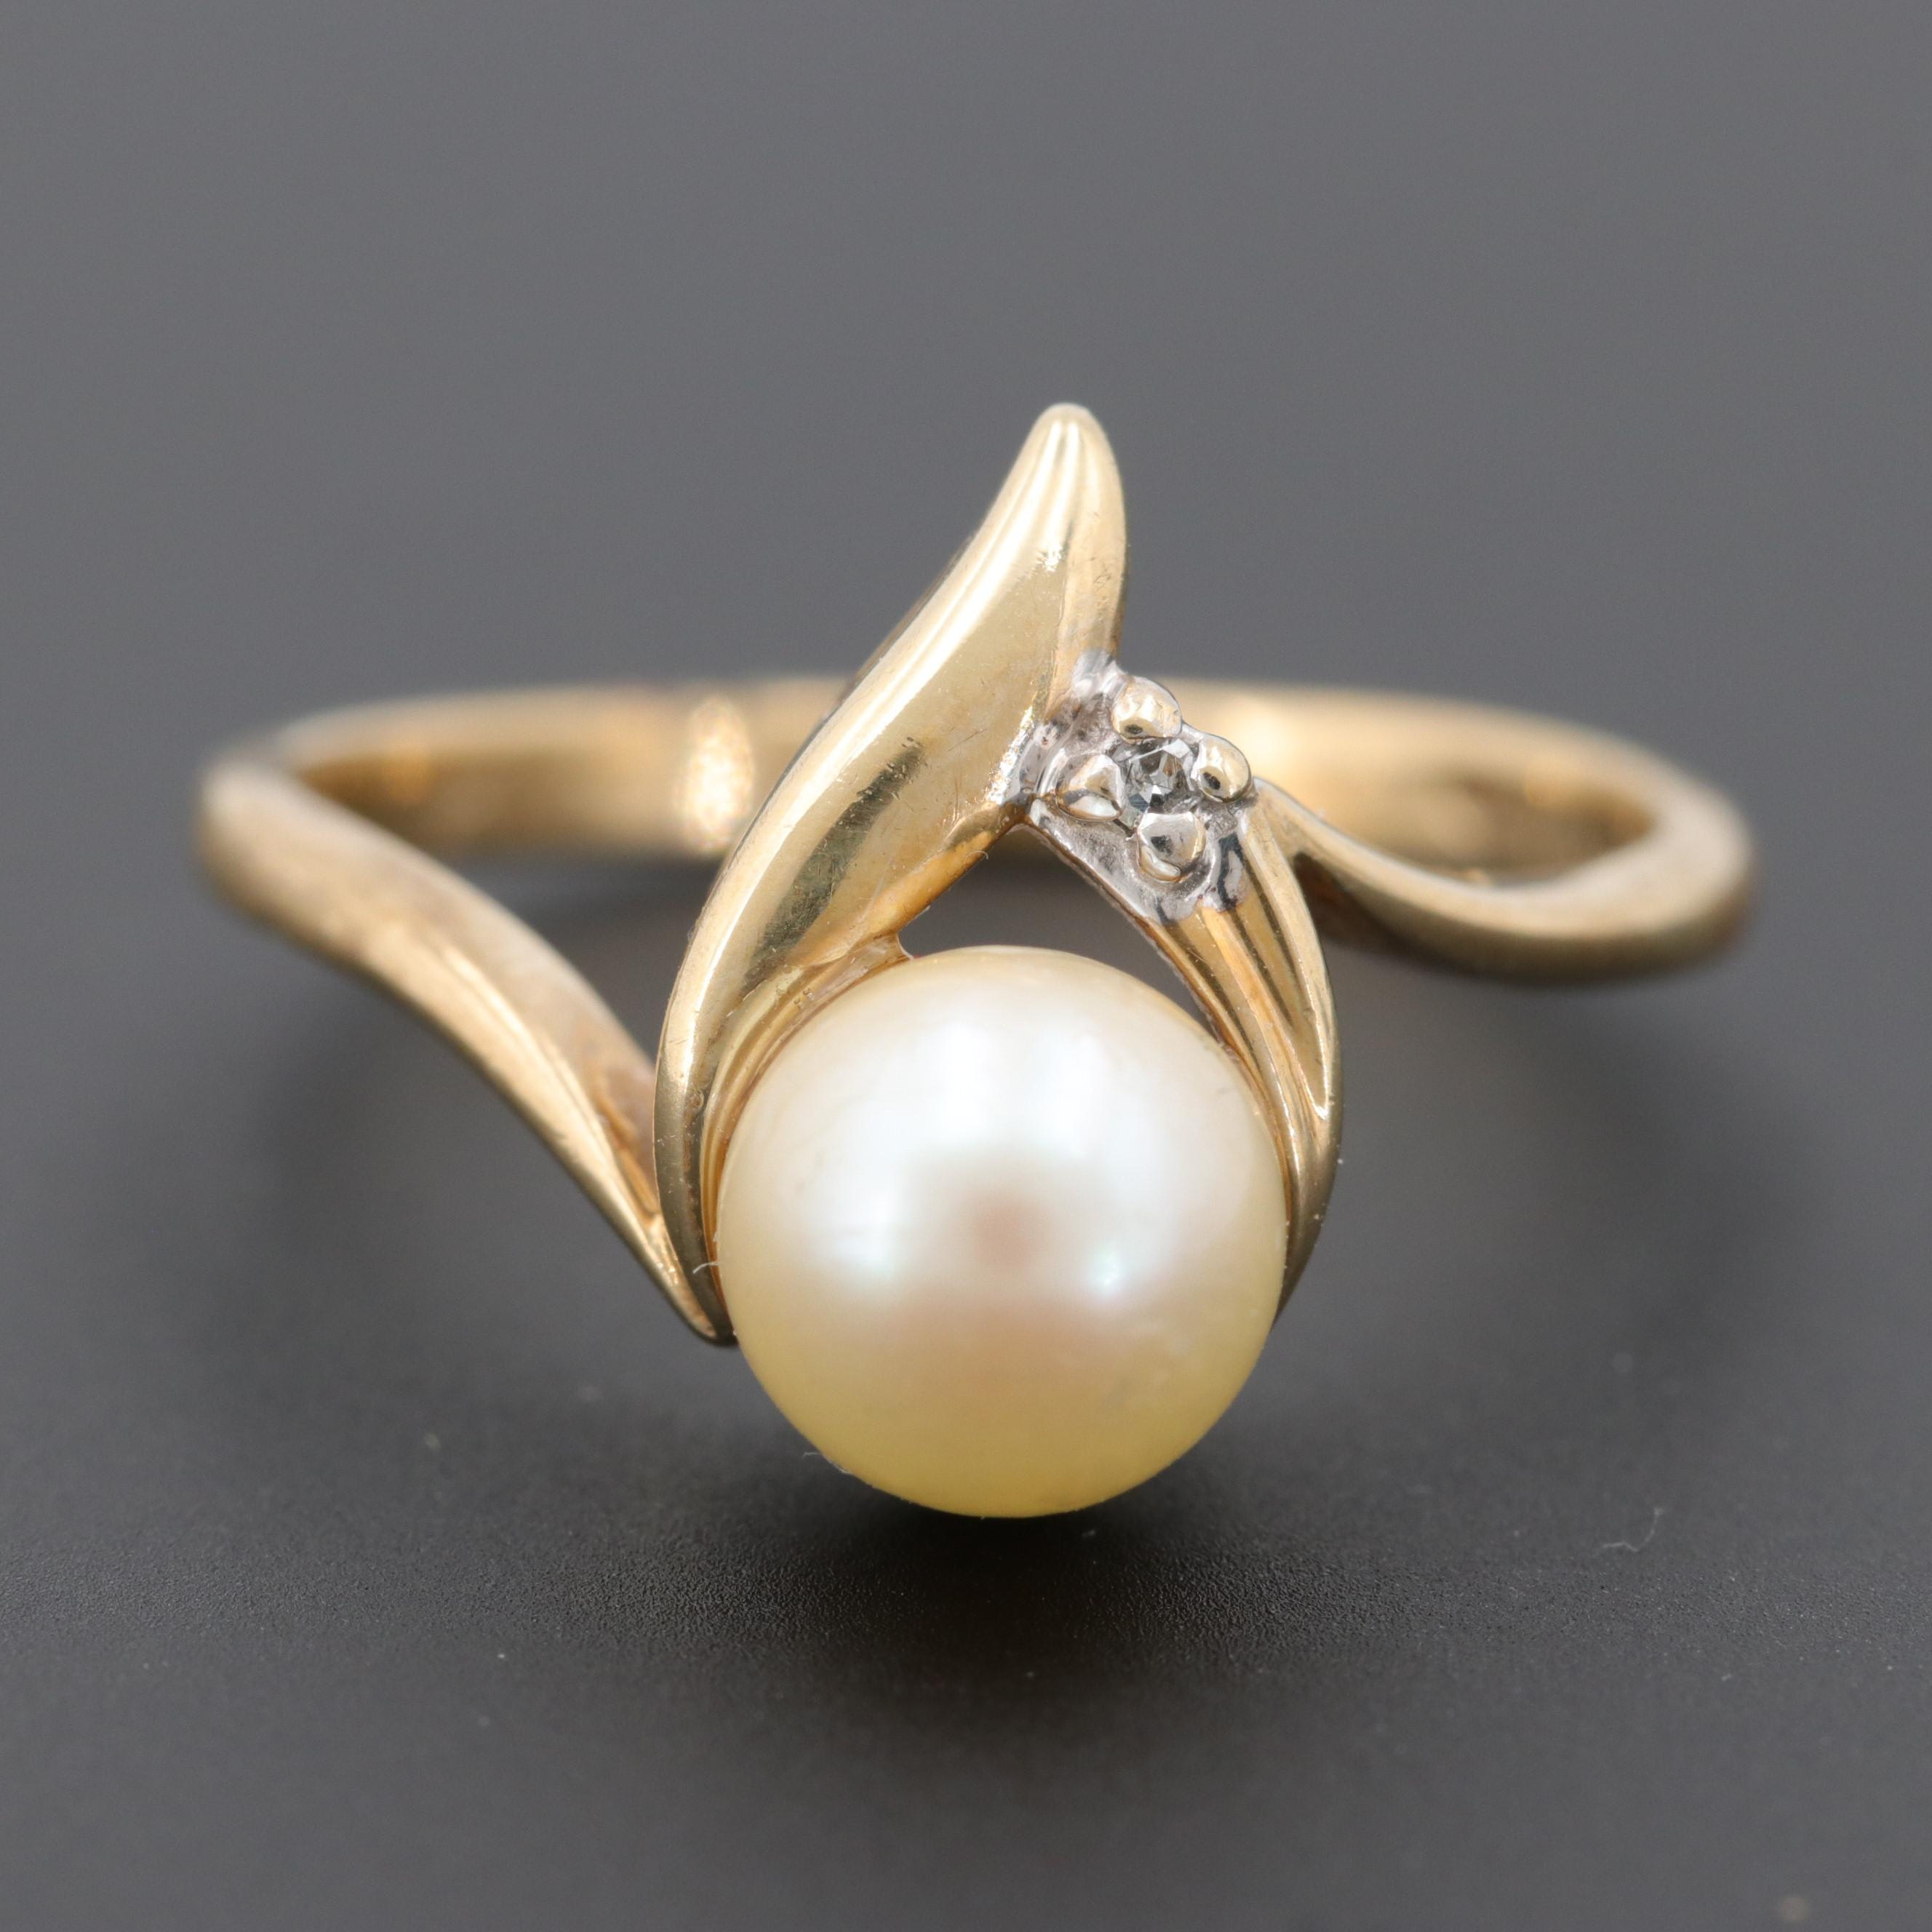 Alwand Vahan 10K Yellow Gold Cultured Pearl Ring with Diamond Accent